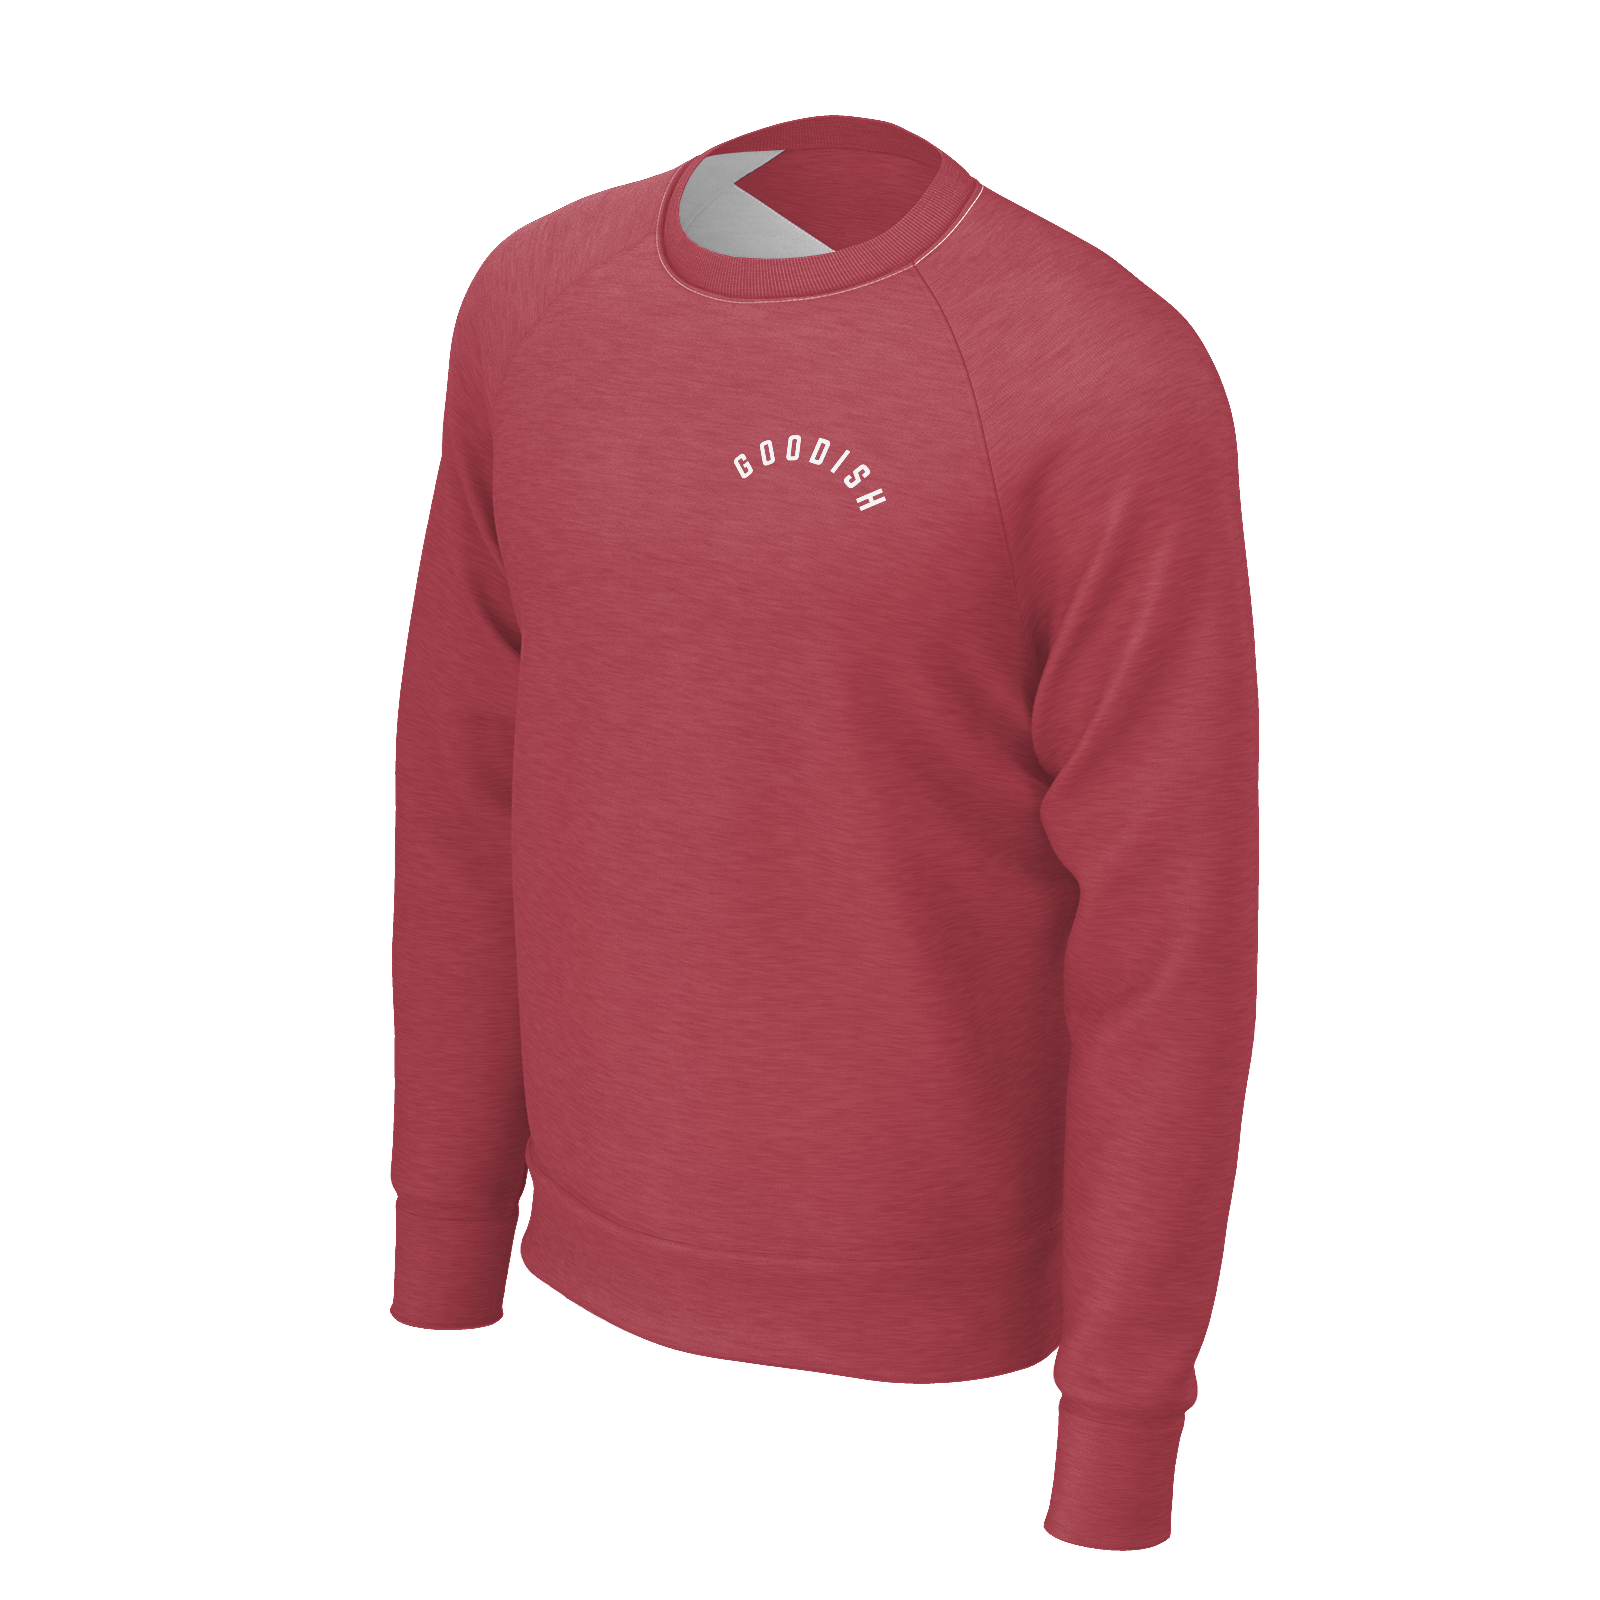 Deraj Goodish Red Crewneck